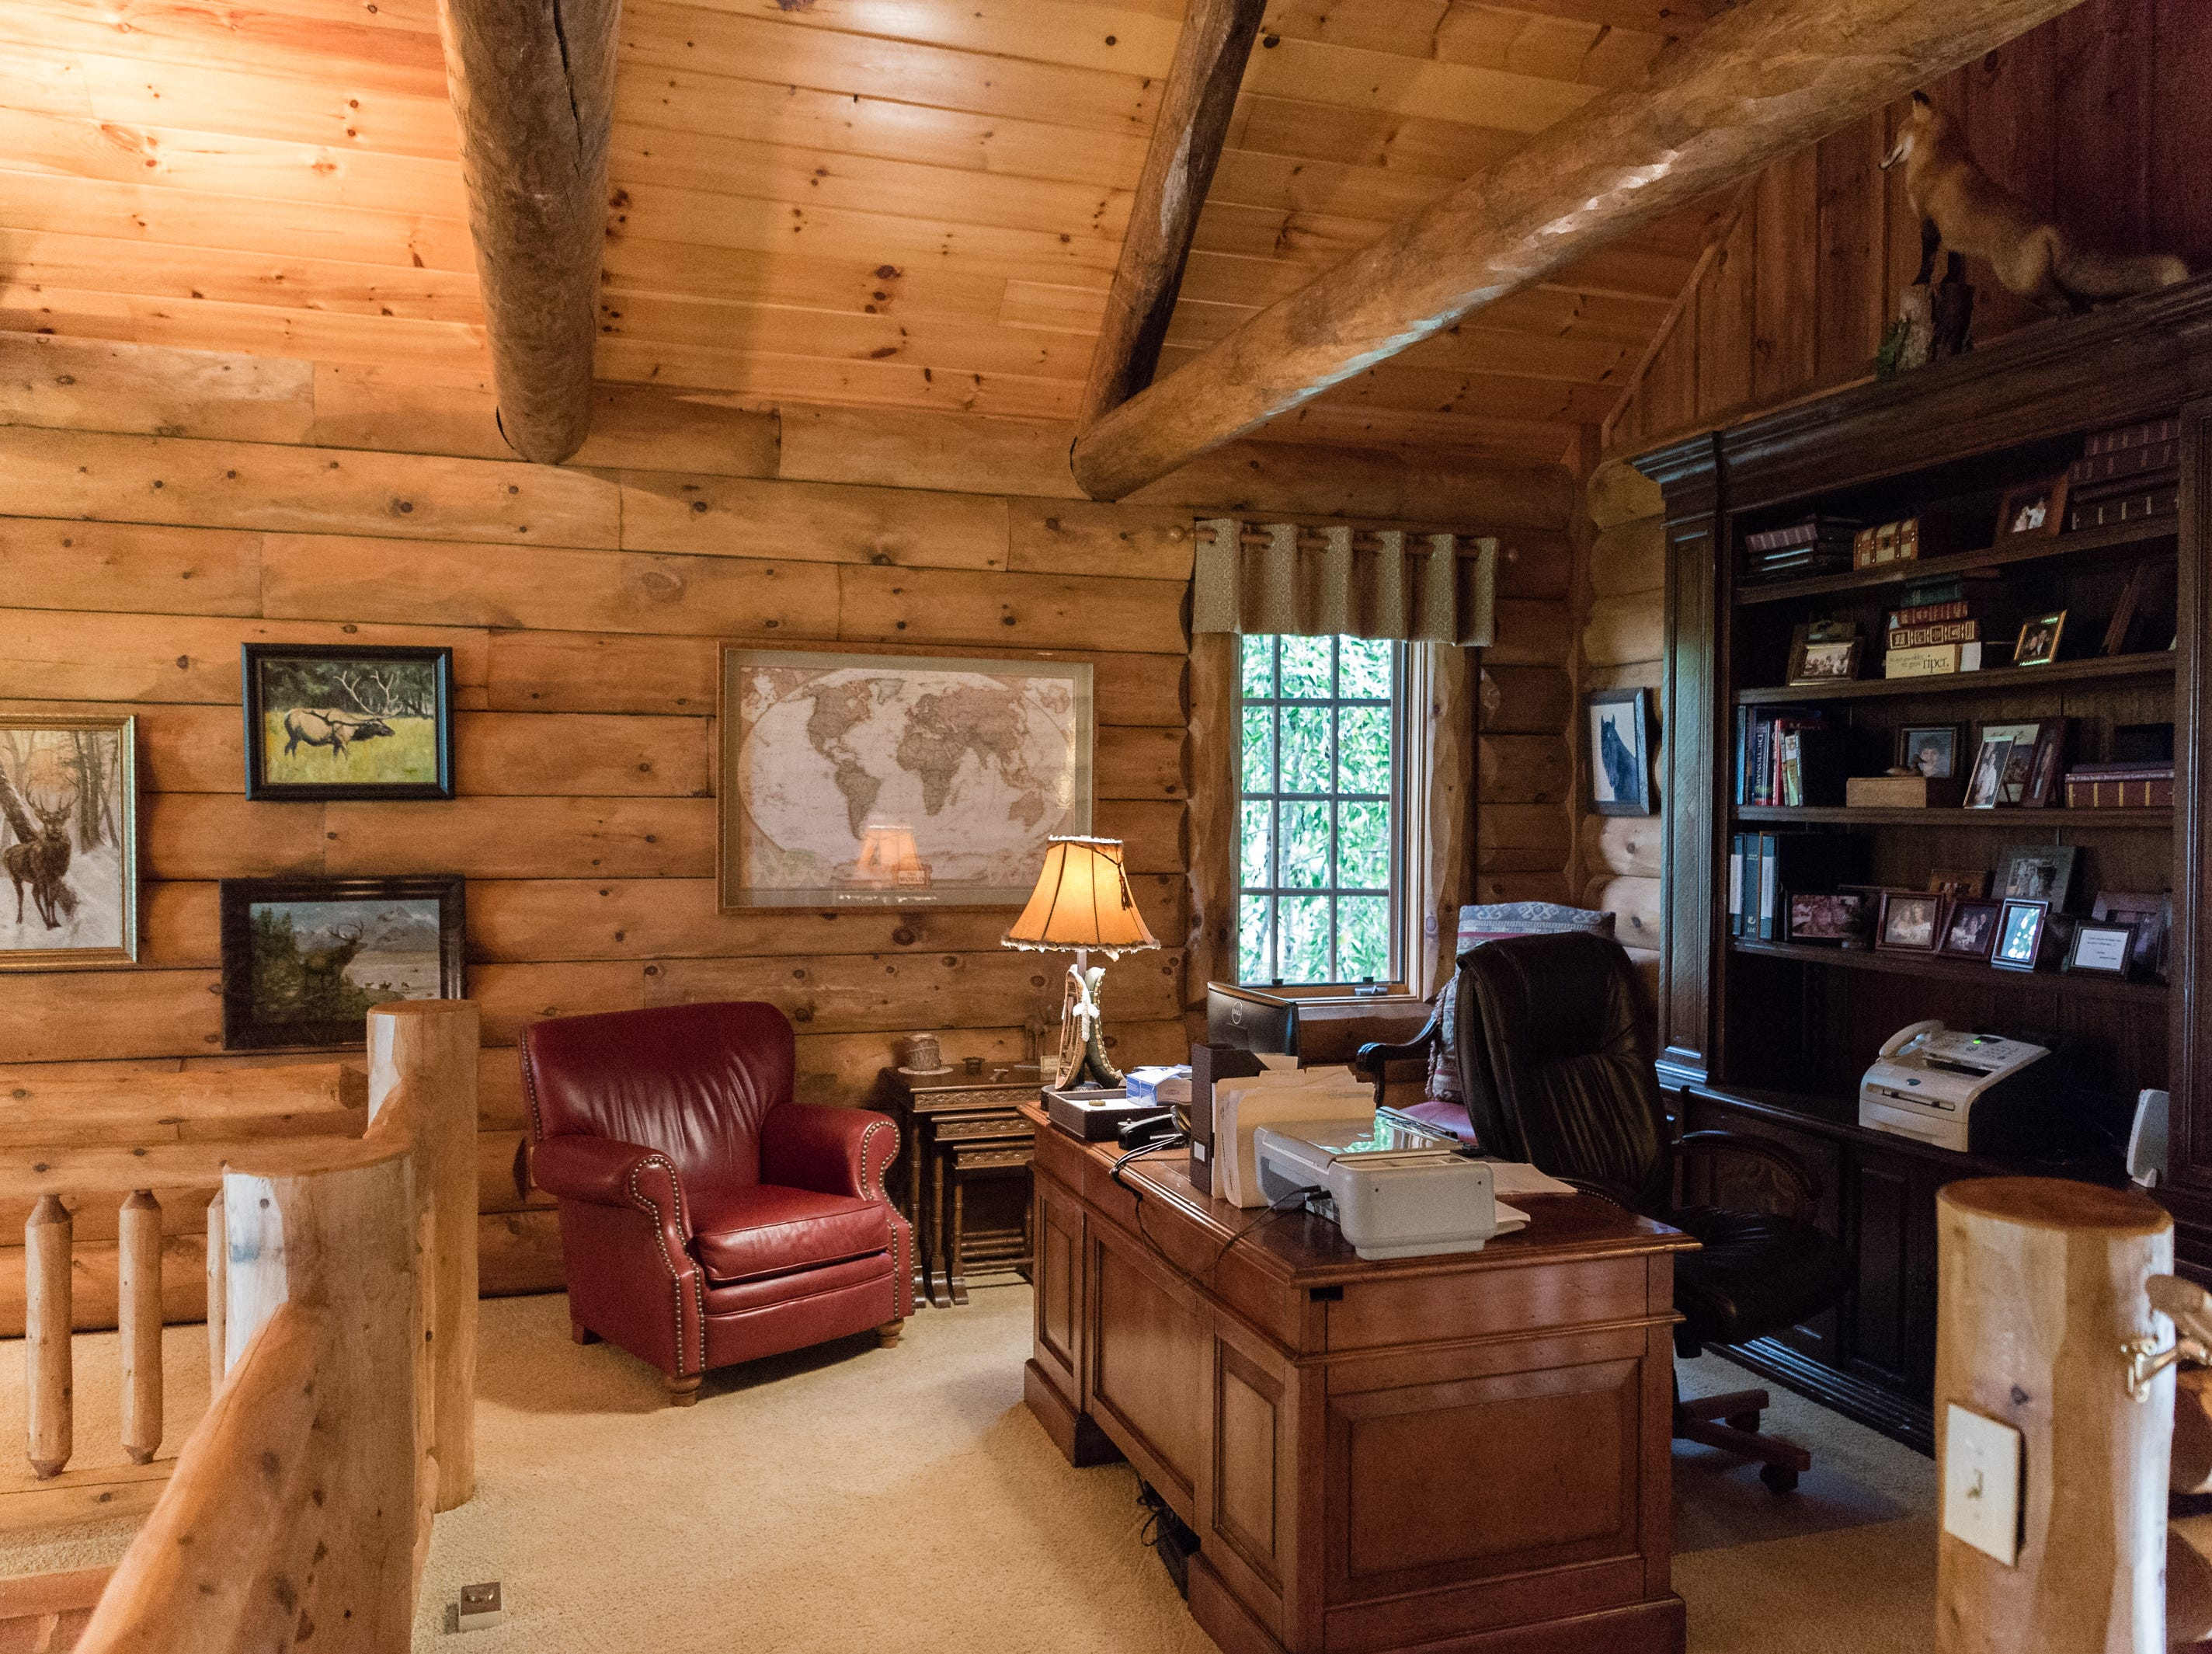 An office area in Dan and Belle Fangmeyer's log cabin in Waynesville.